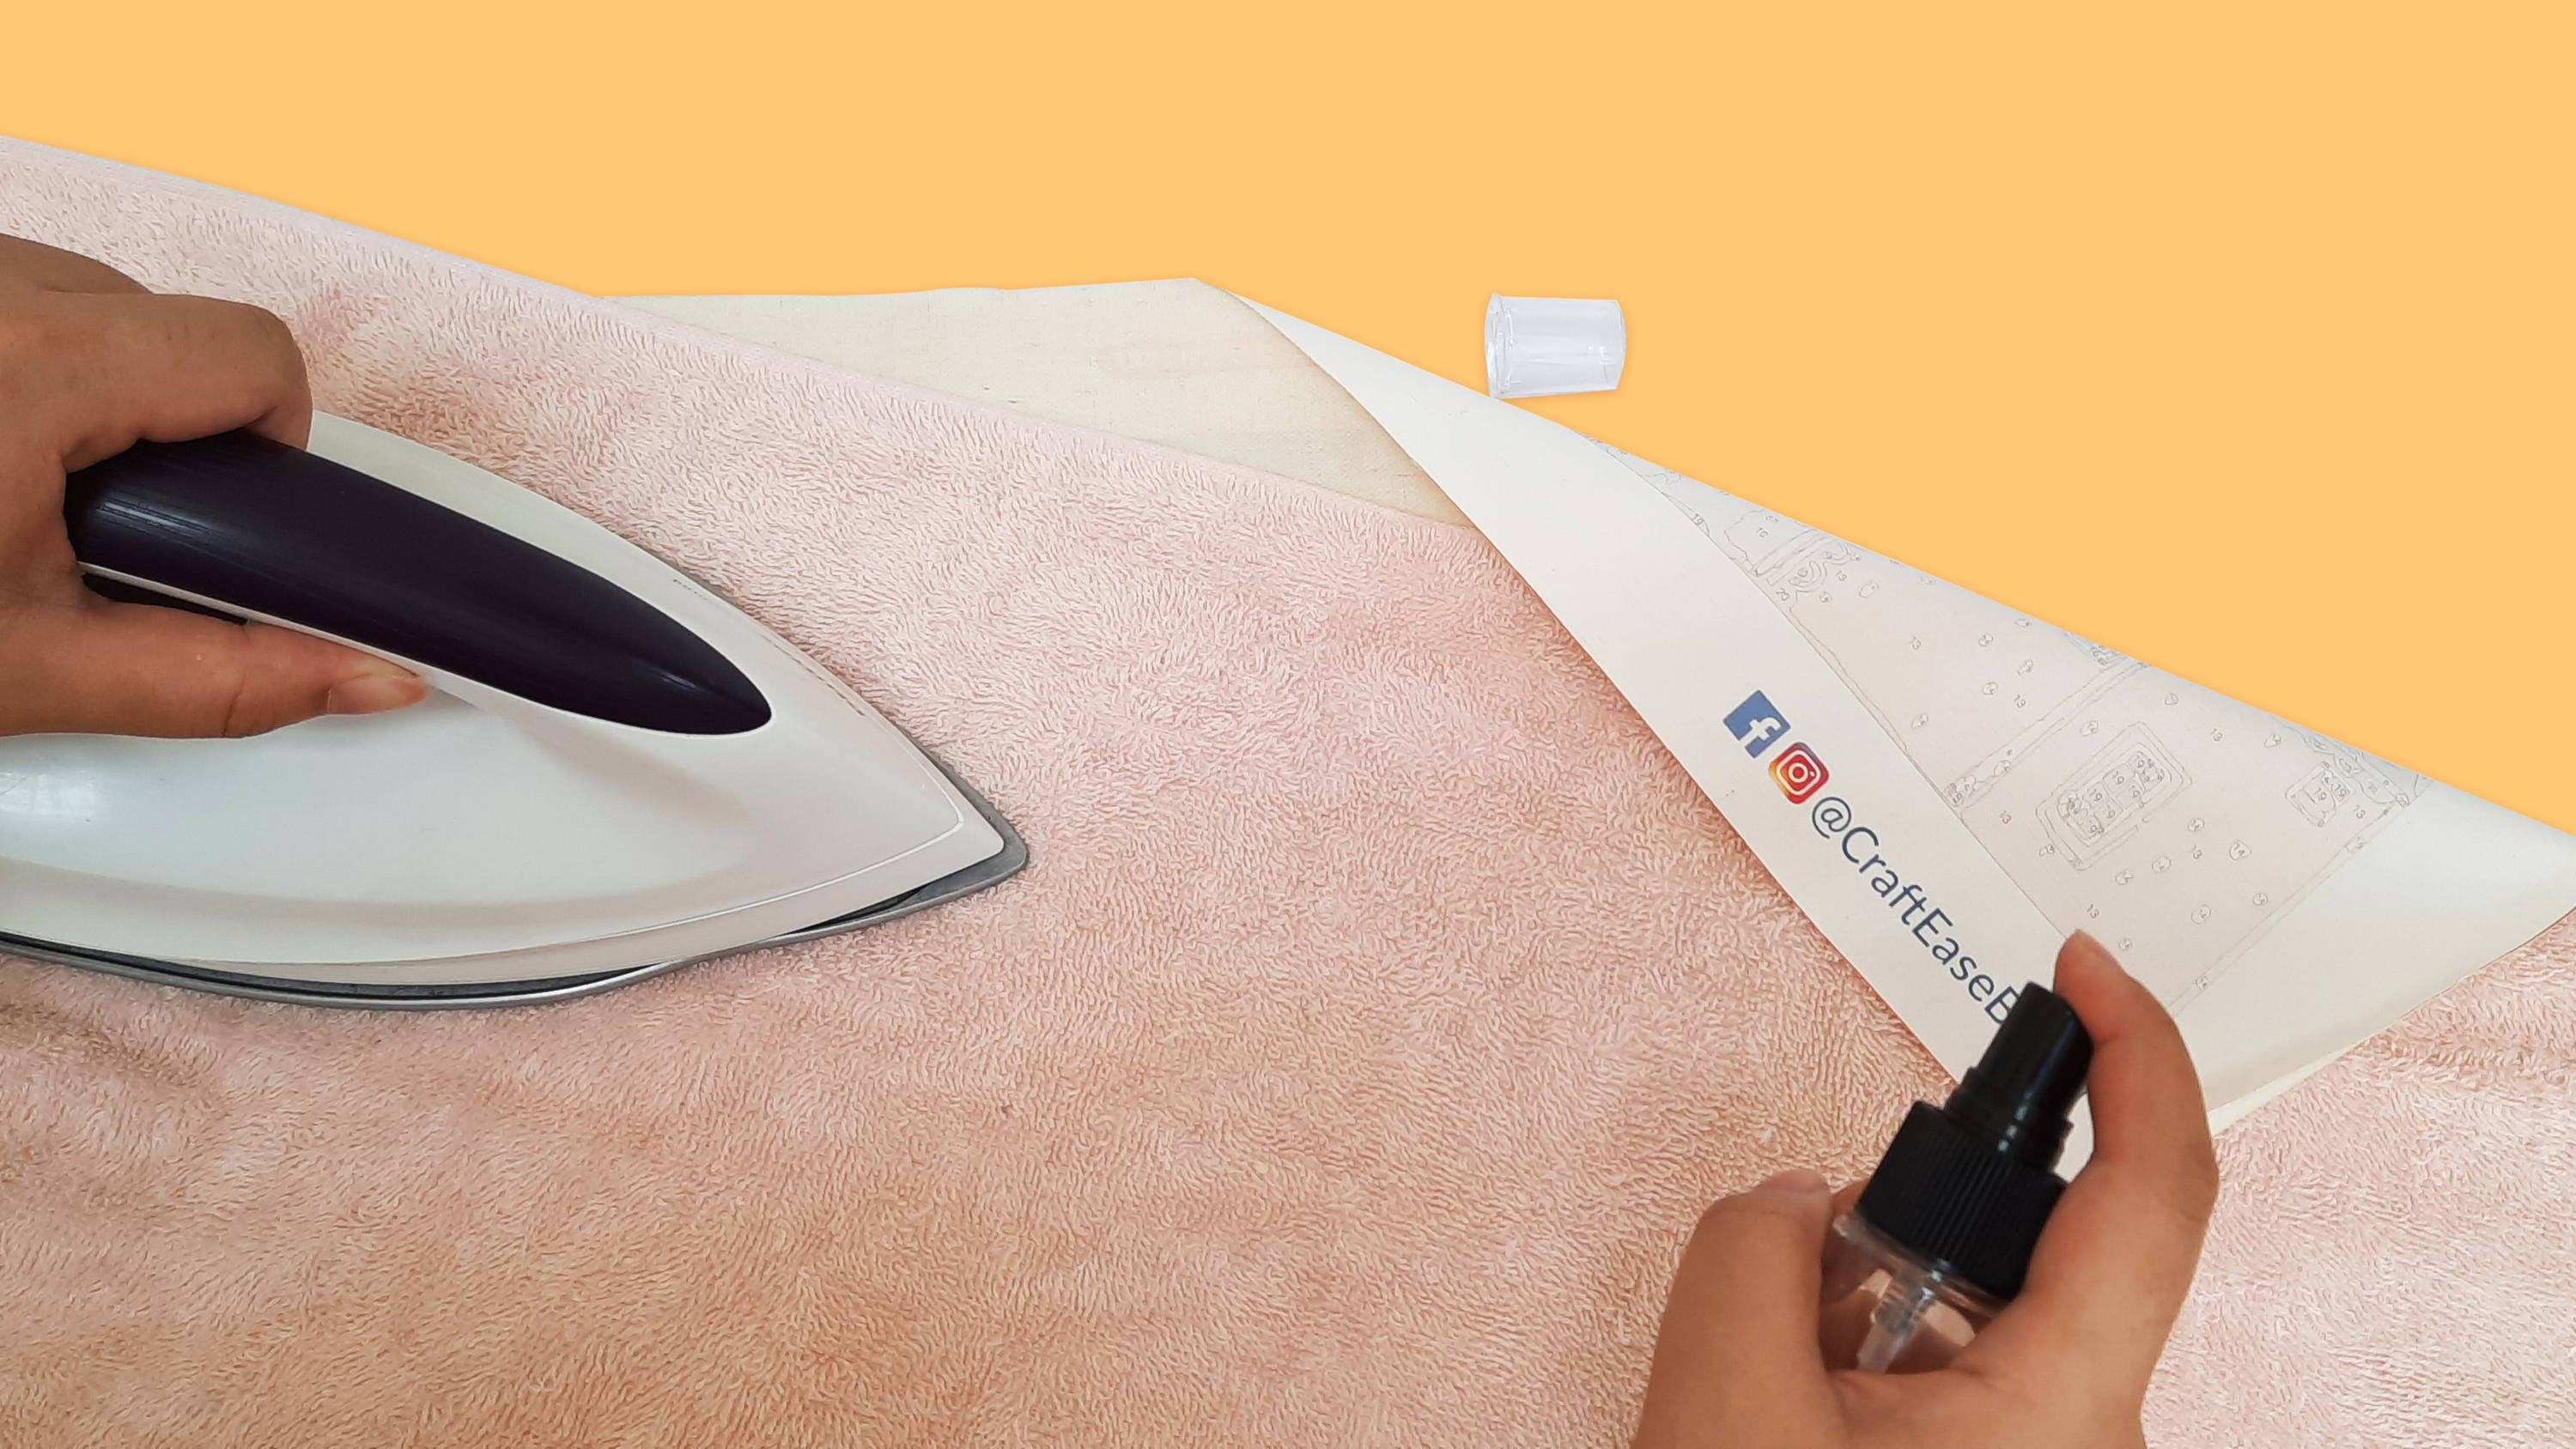 Iron the back side of your canvas to get rid of creases and wrinkles.